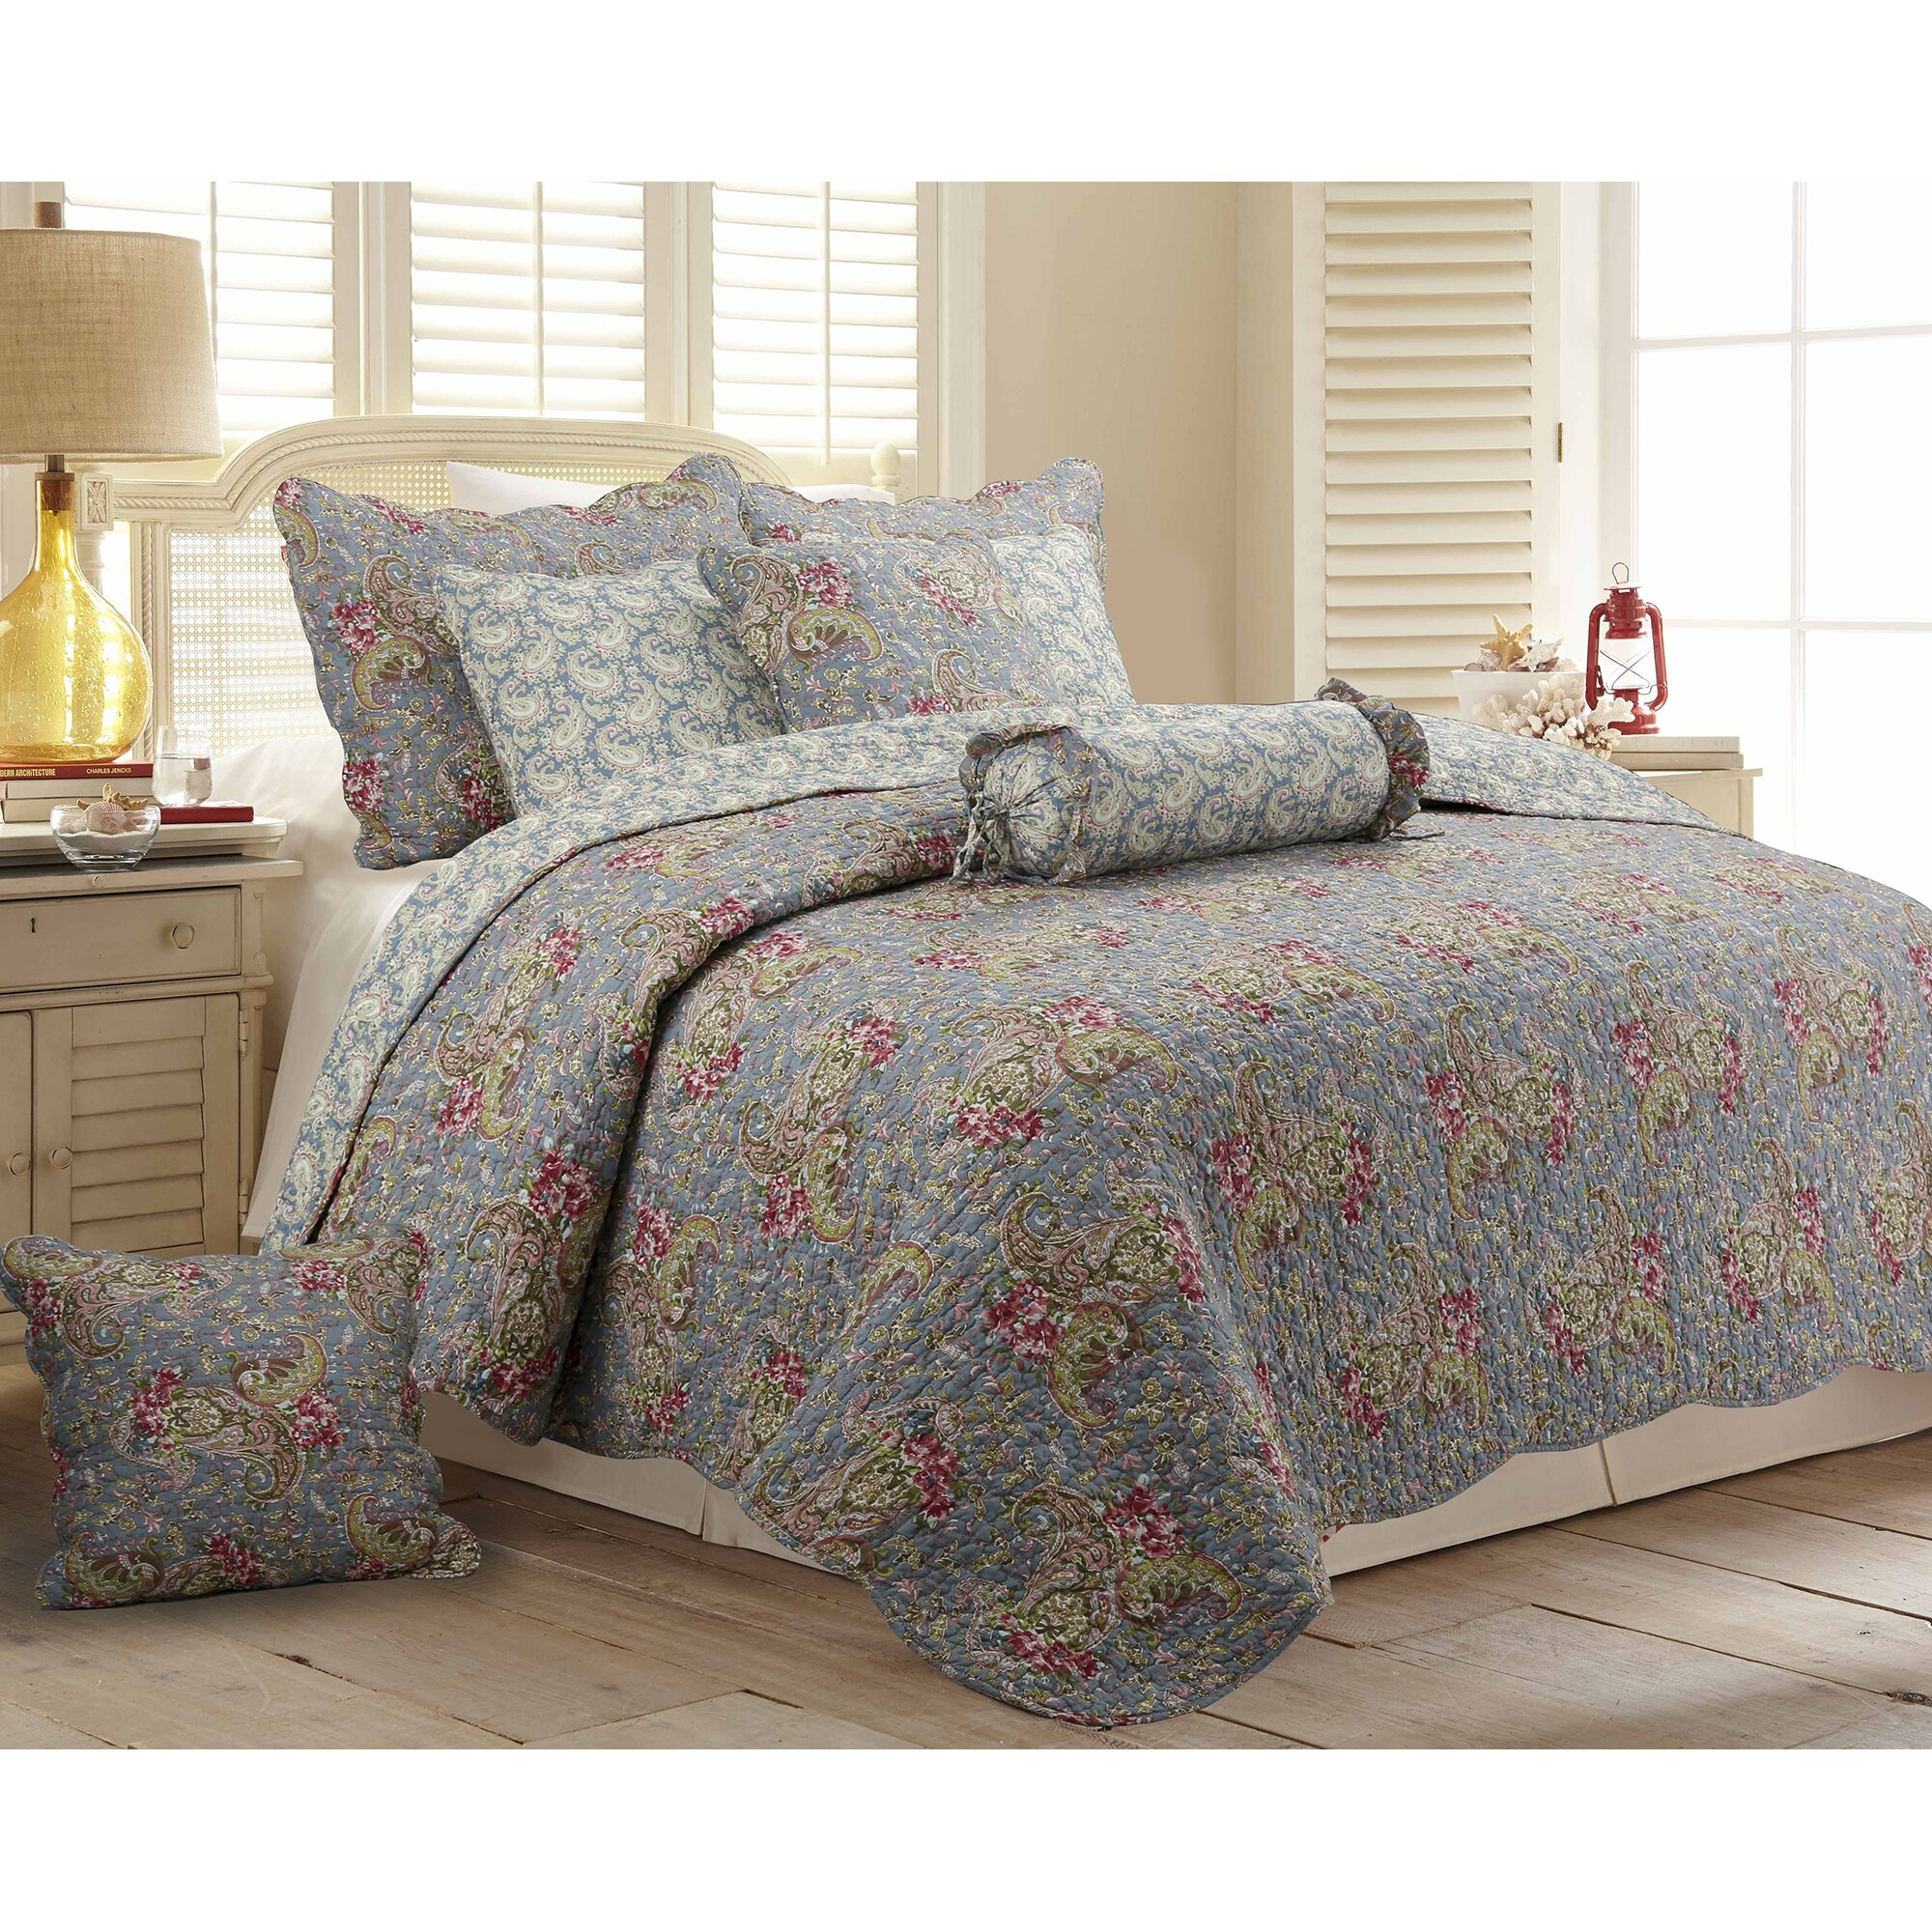 Bed sheet set with quilt - Raya 3 Piece Reversible Quilt Set